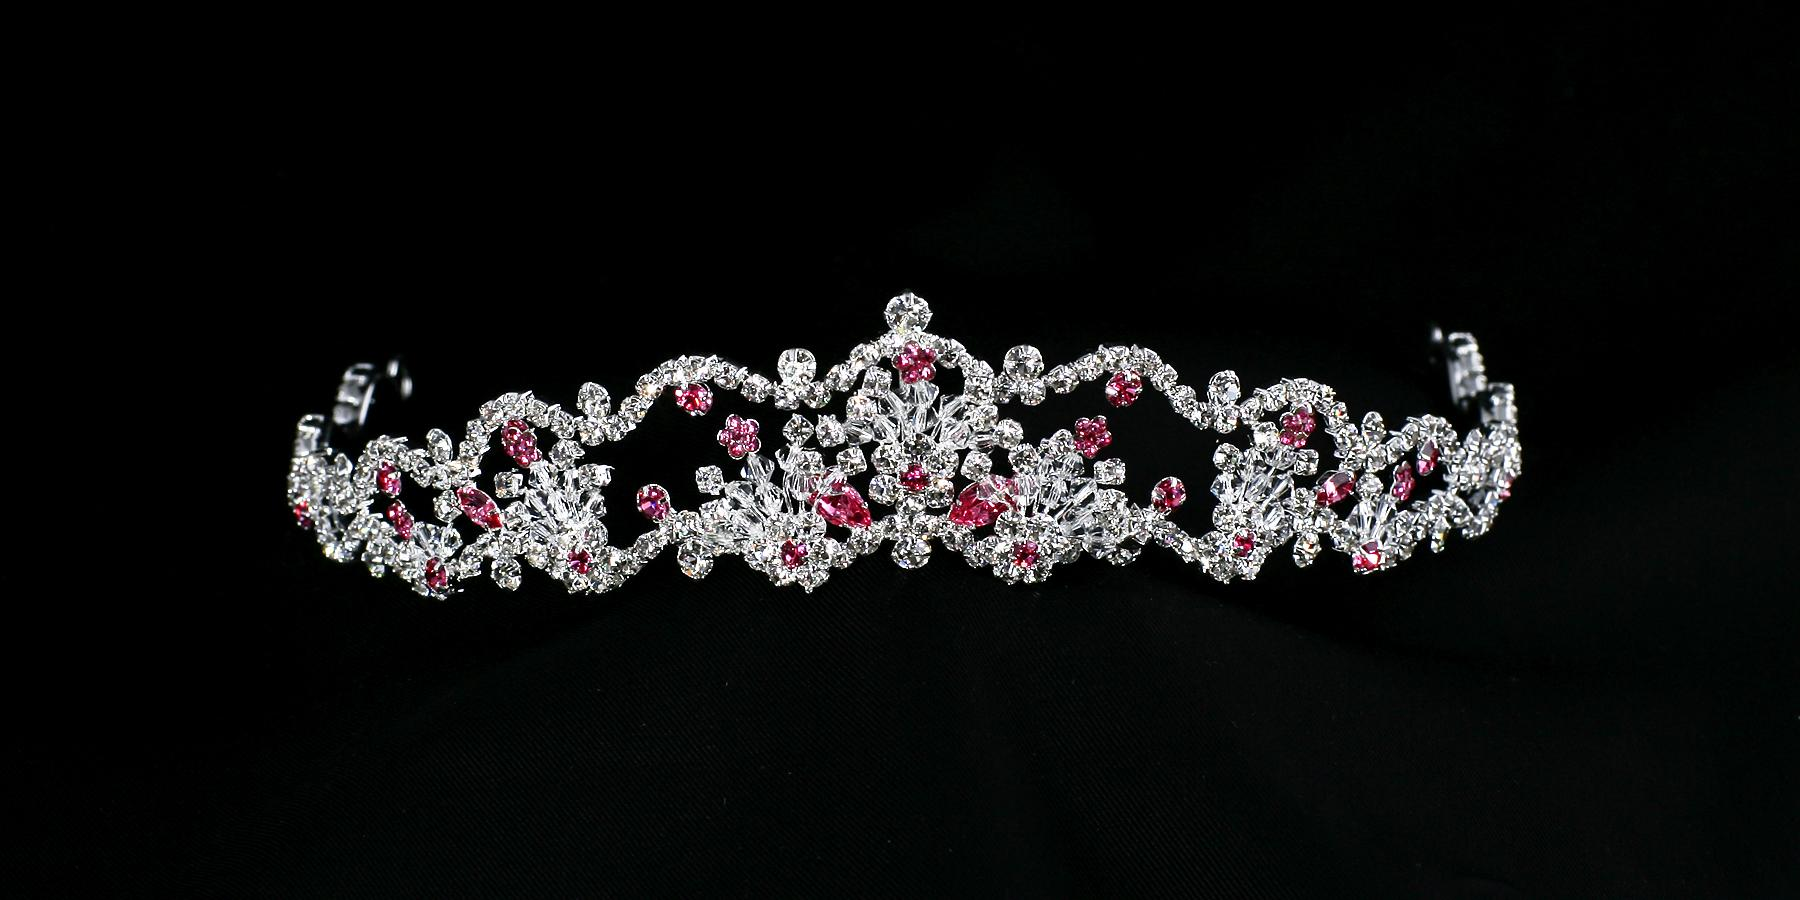 C9313 Swarovski Crystal and Rhinestone Headpiece